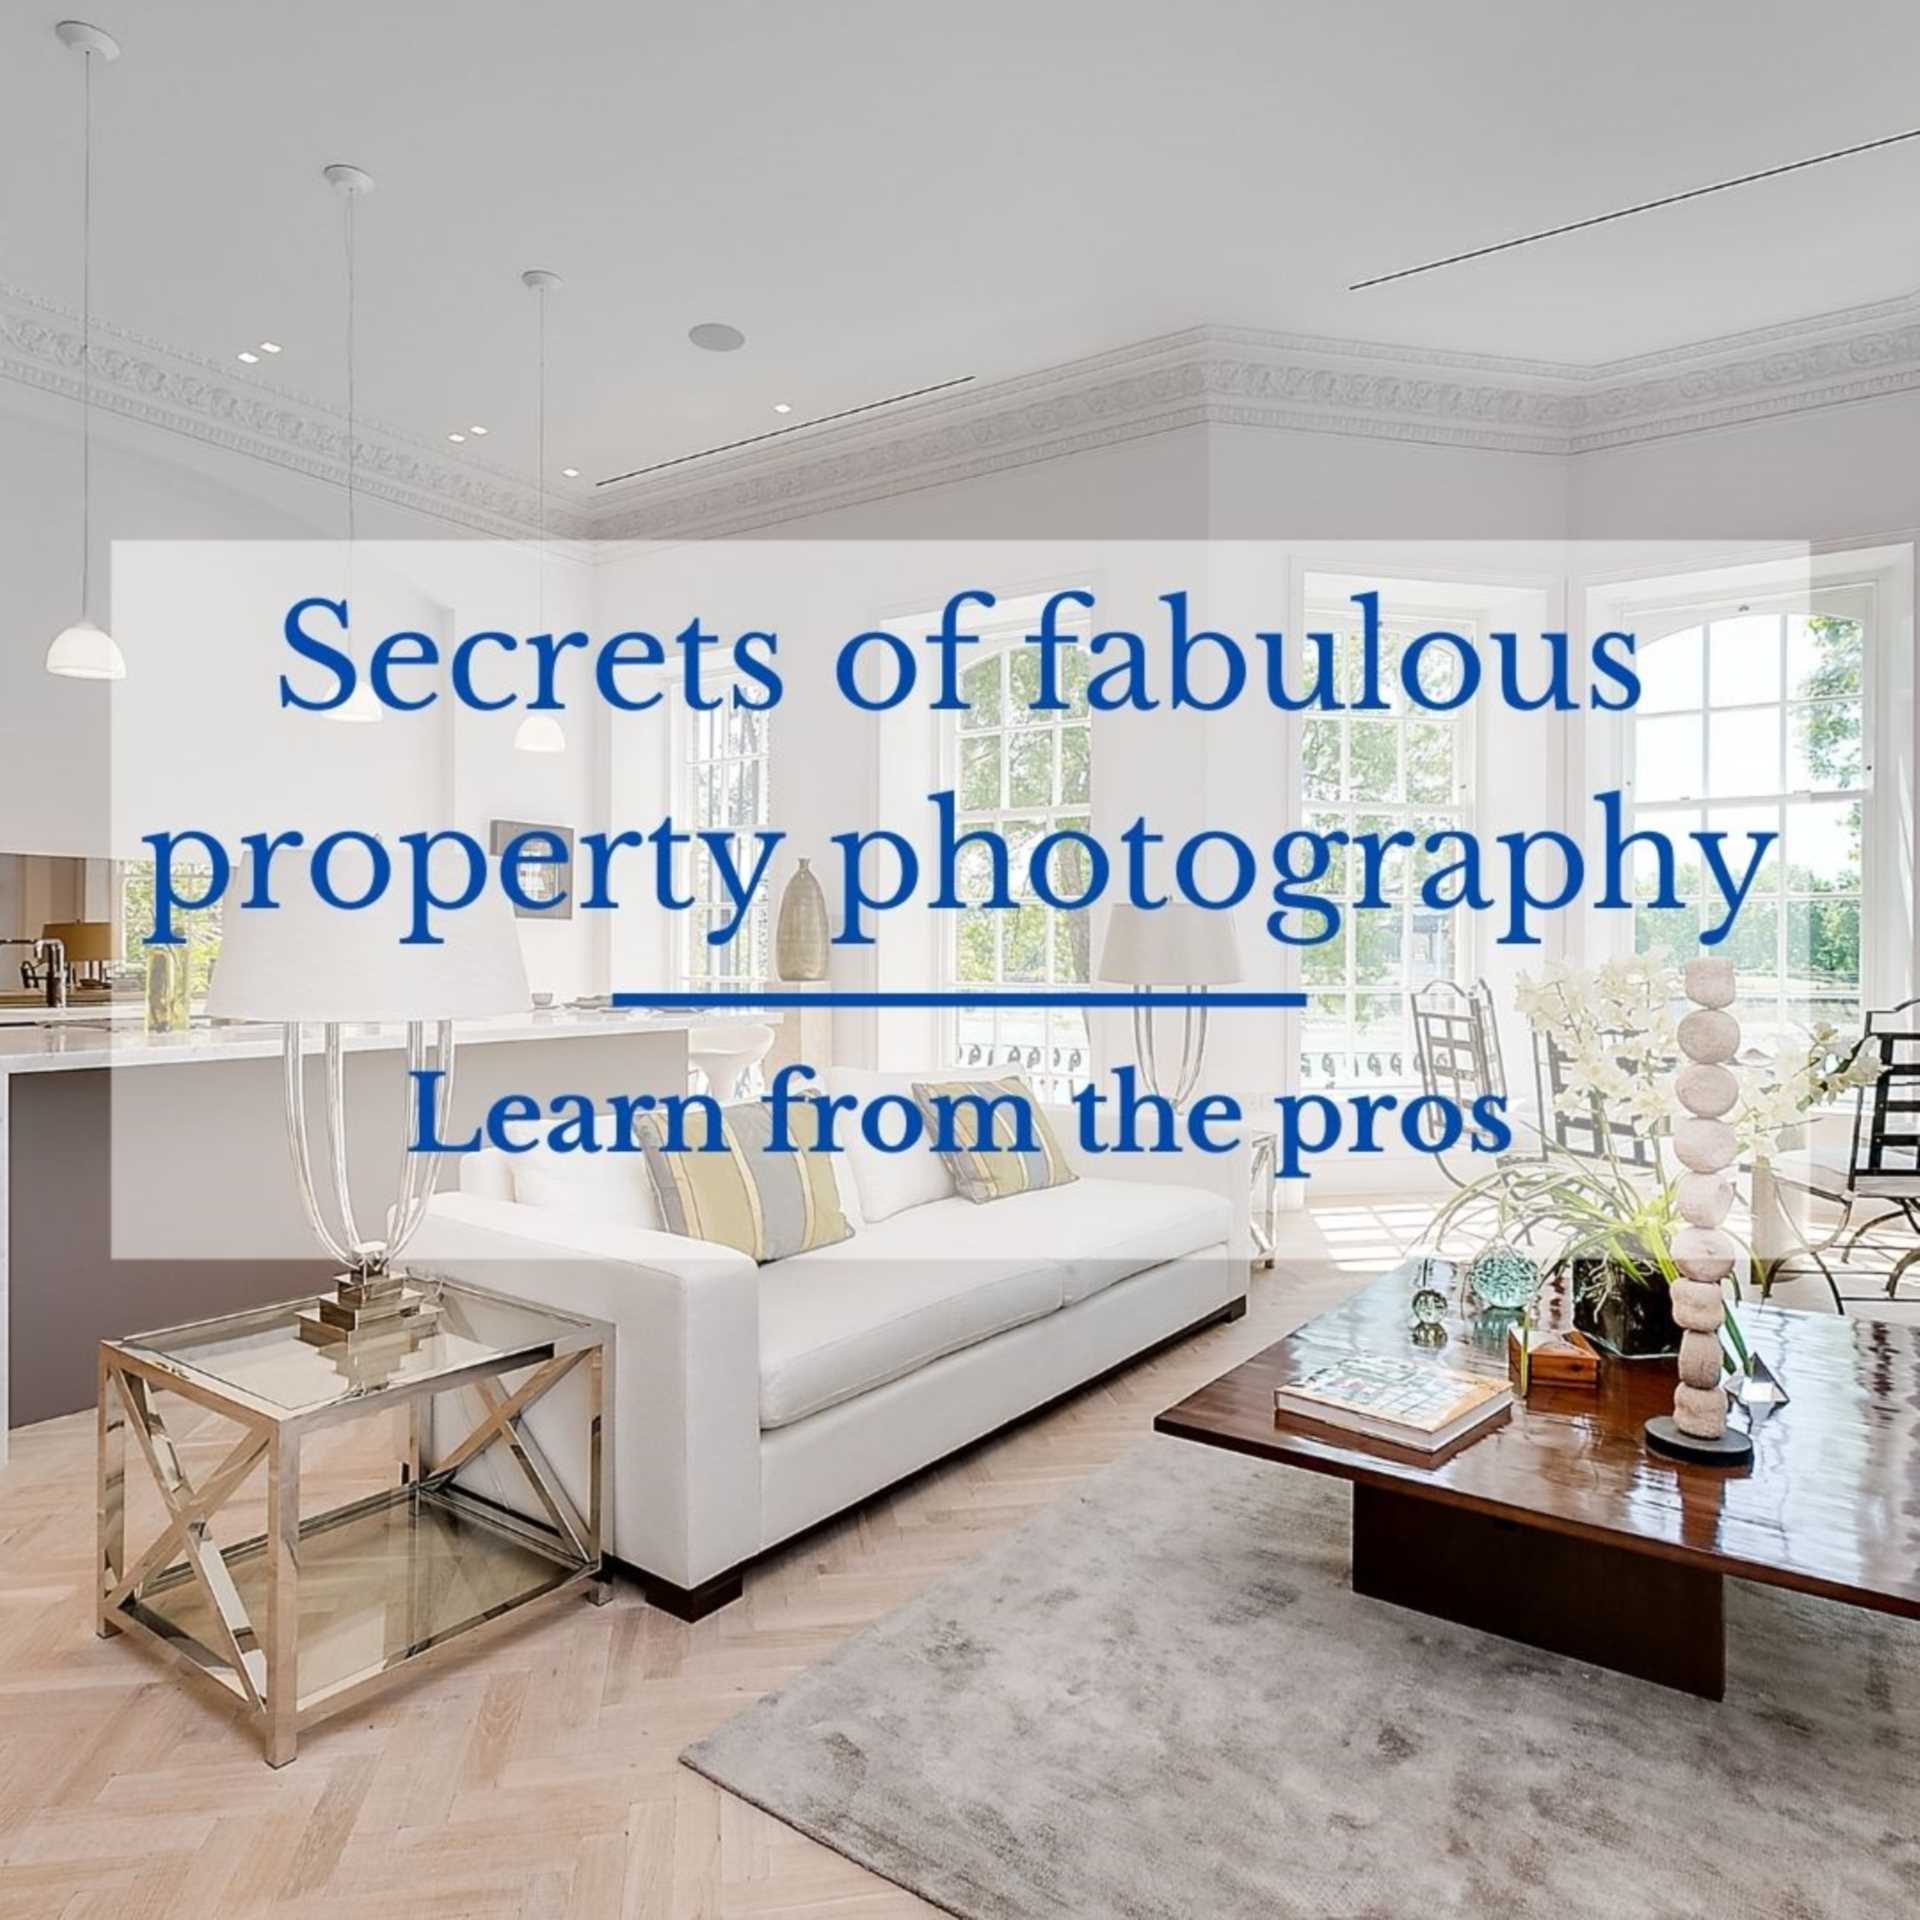 Secrets of fabulous property photography